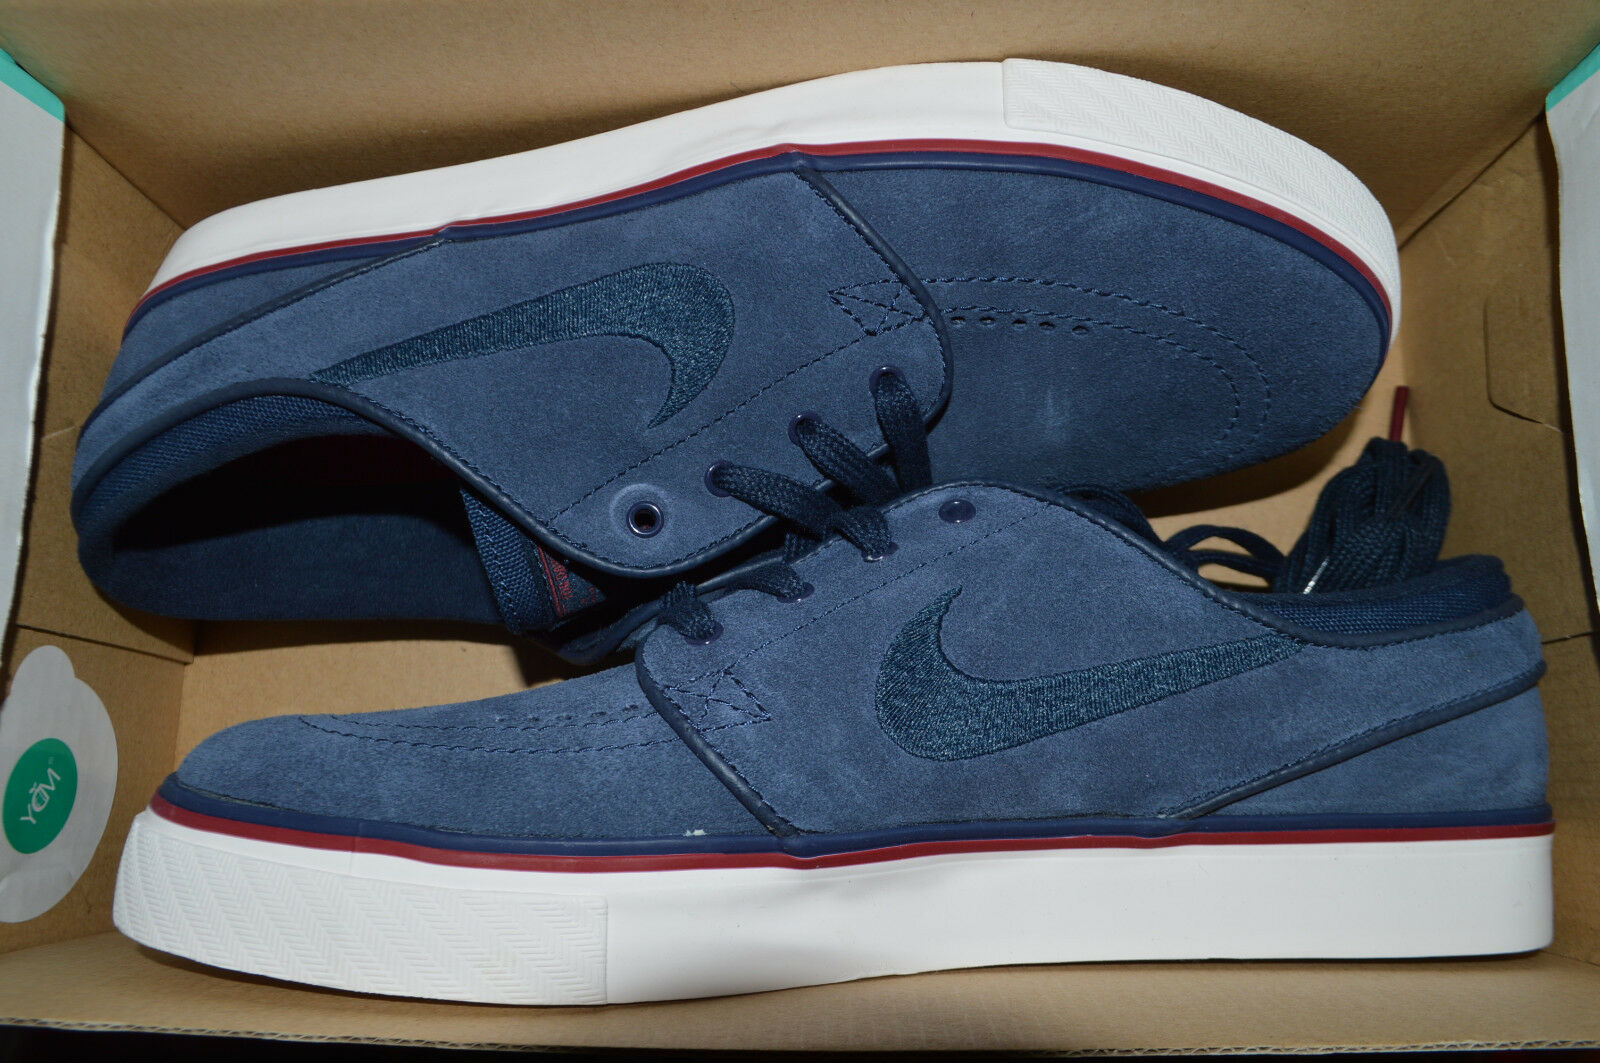 New Nike SB Zoom Janoski Shoes Sneakers AH4233-446 womens 9.5 or Mens Price reduction